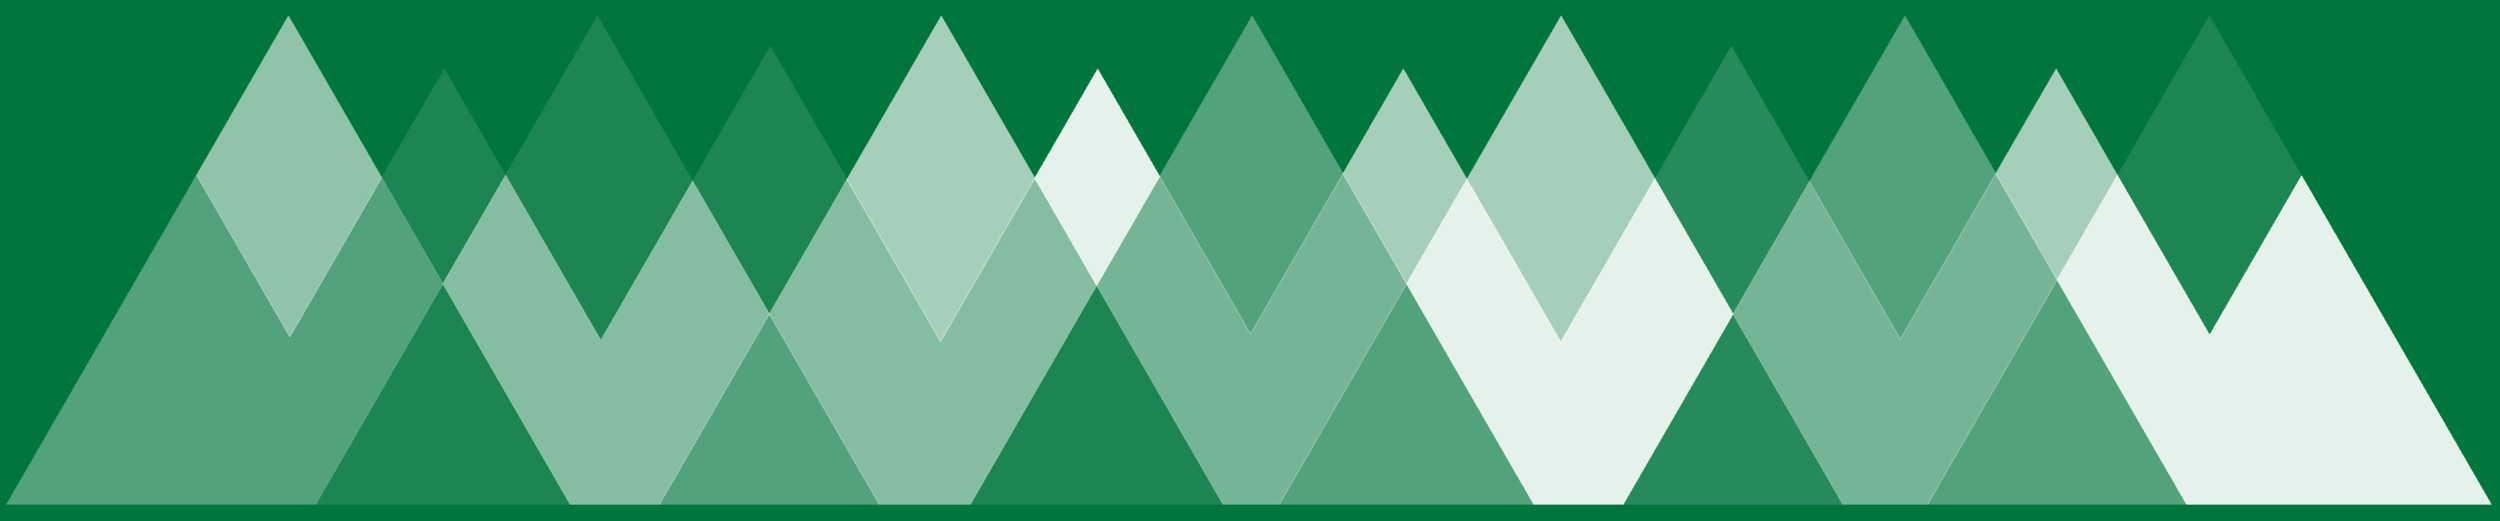 PNG (transparent)  |  JPG (on green)